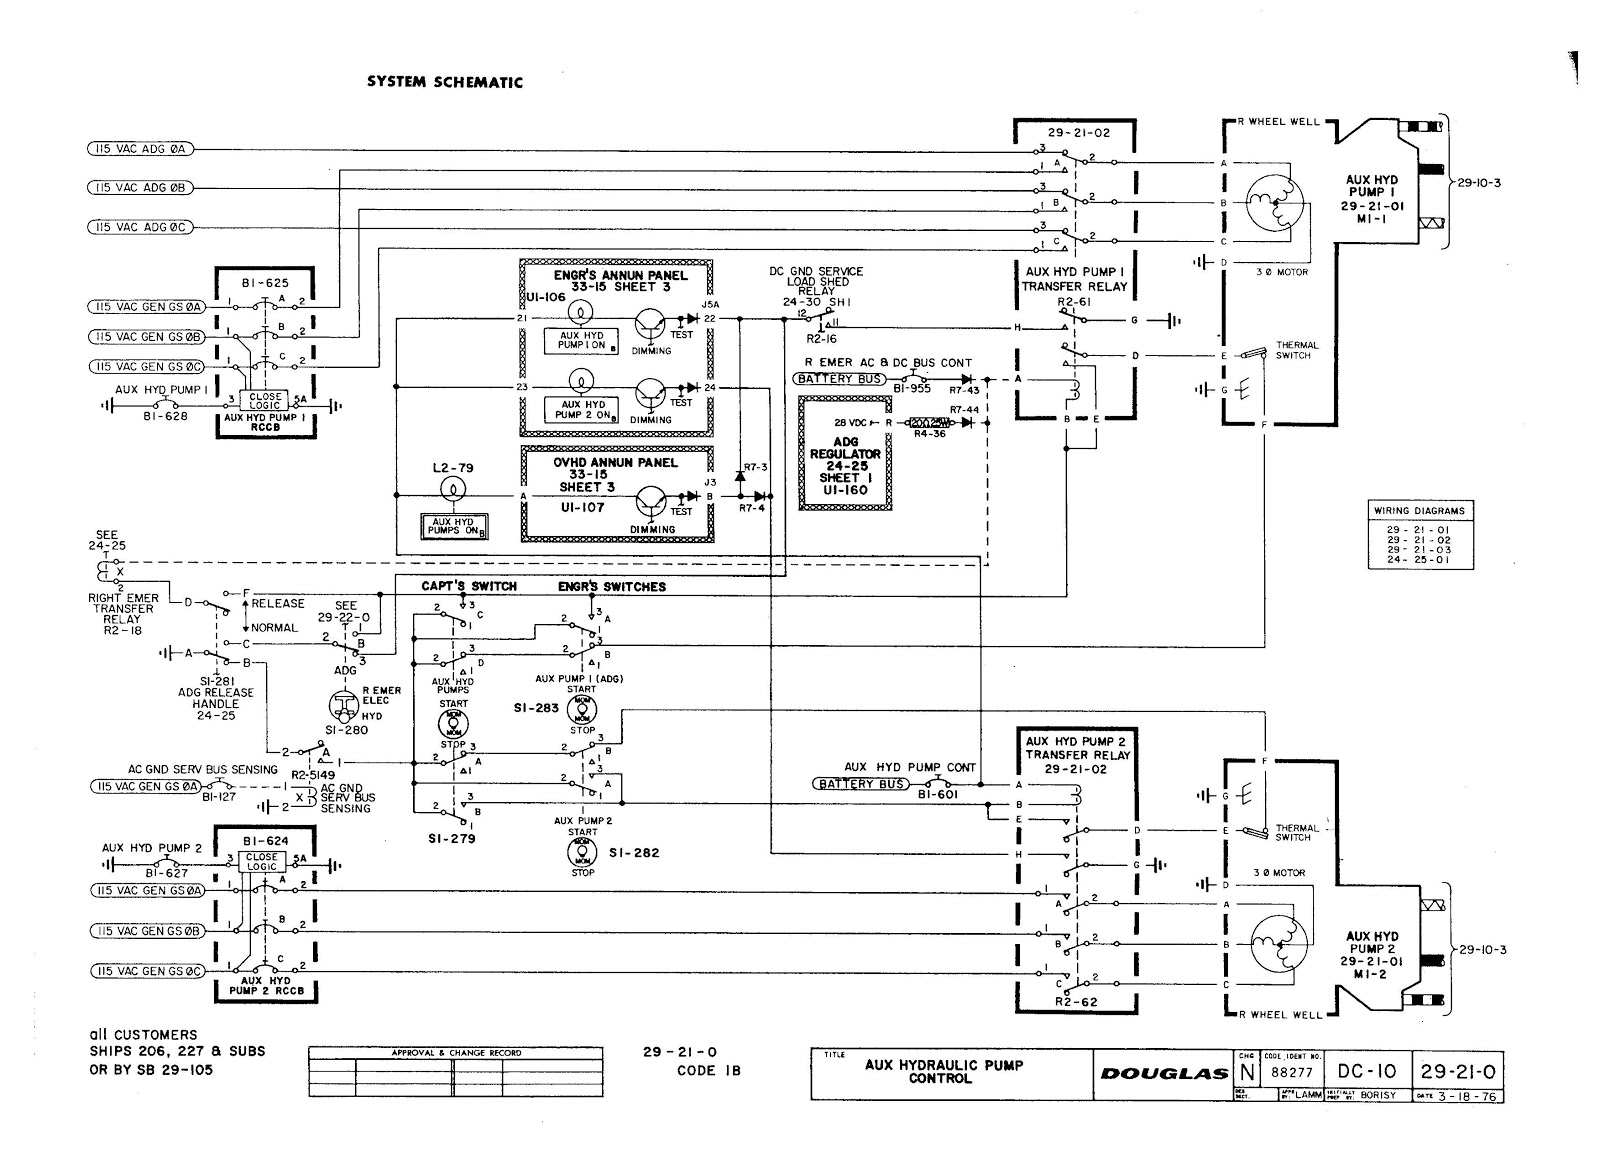 Schematic+diagram+dc+10+hydraulic+001 part 66 virtual school aircraft wiring and schematic diagrams schematic and wiring diagrams at bakdesigns.co